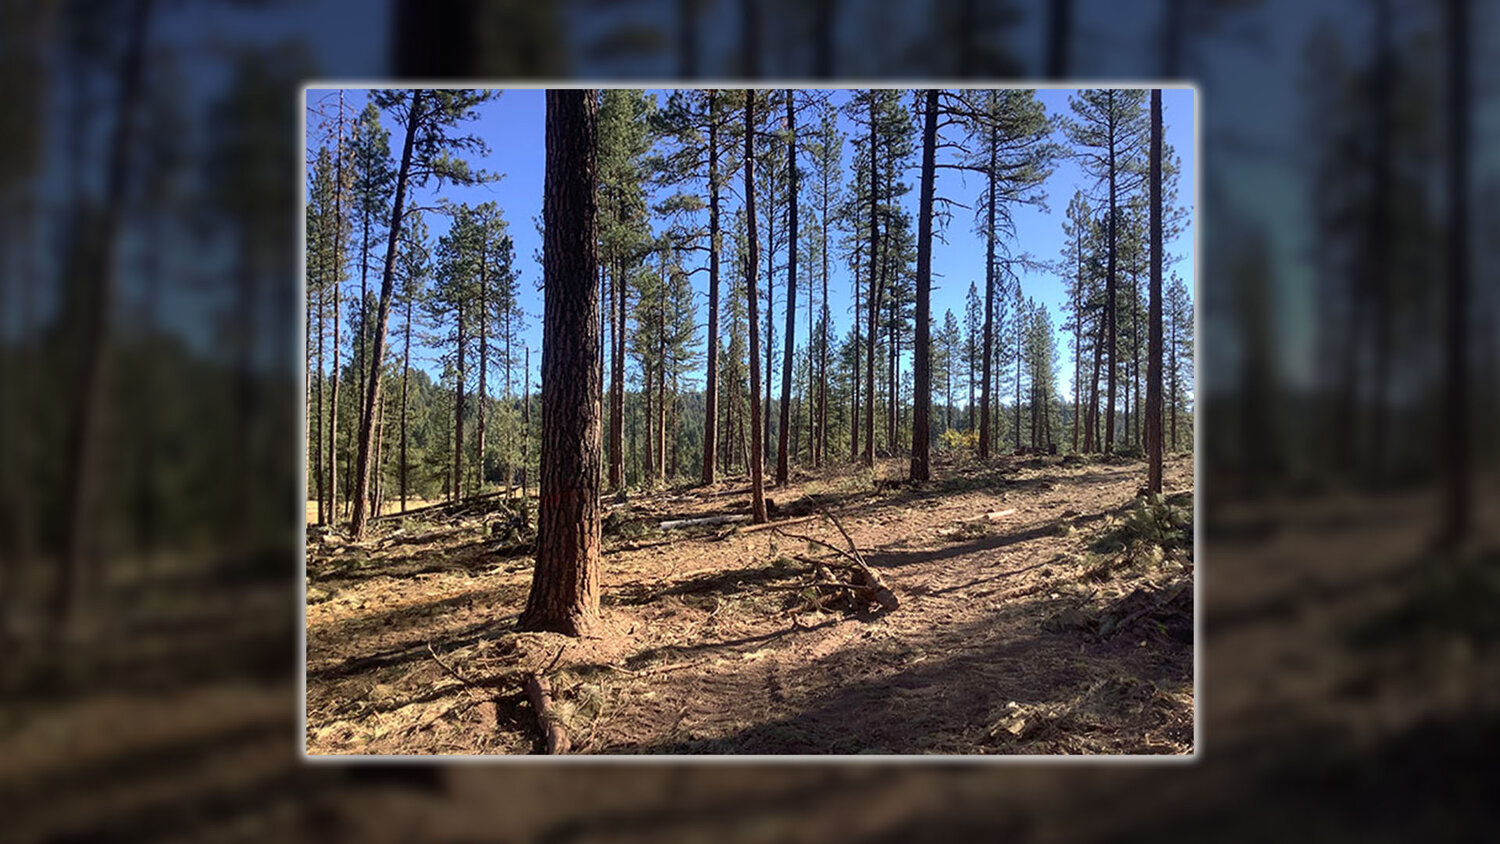 Paddock Butte Forest Restoration Project showcases Good Neighbor Authority, public-private collaboration - Klamath Falls News